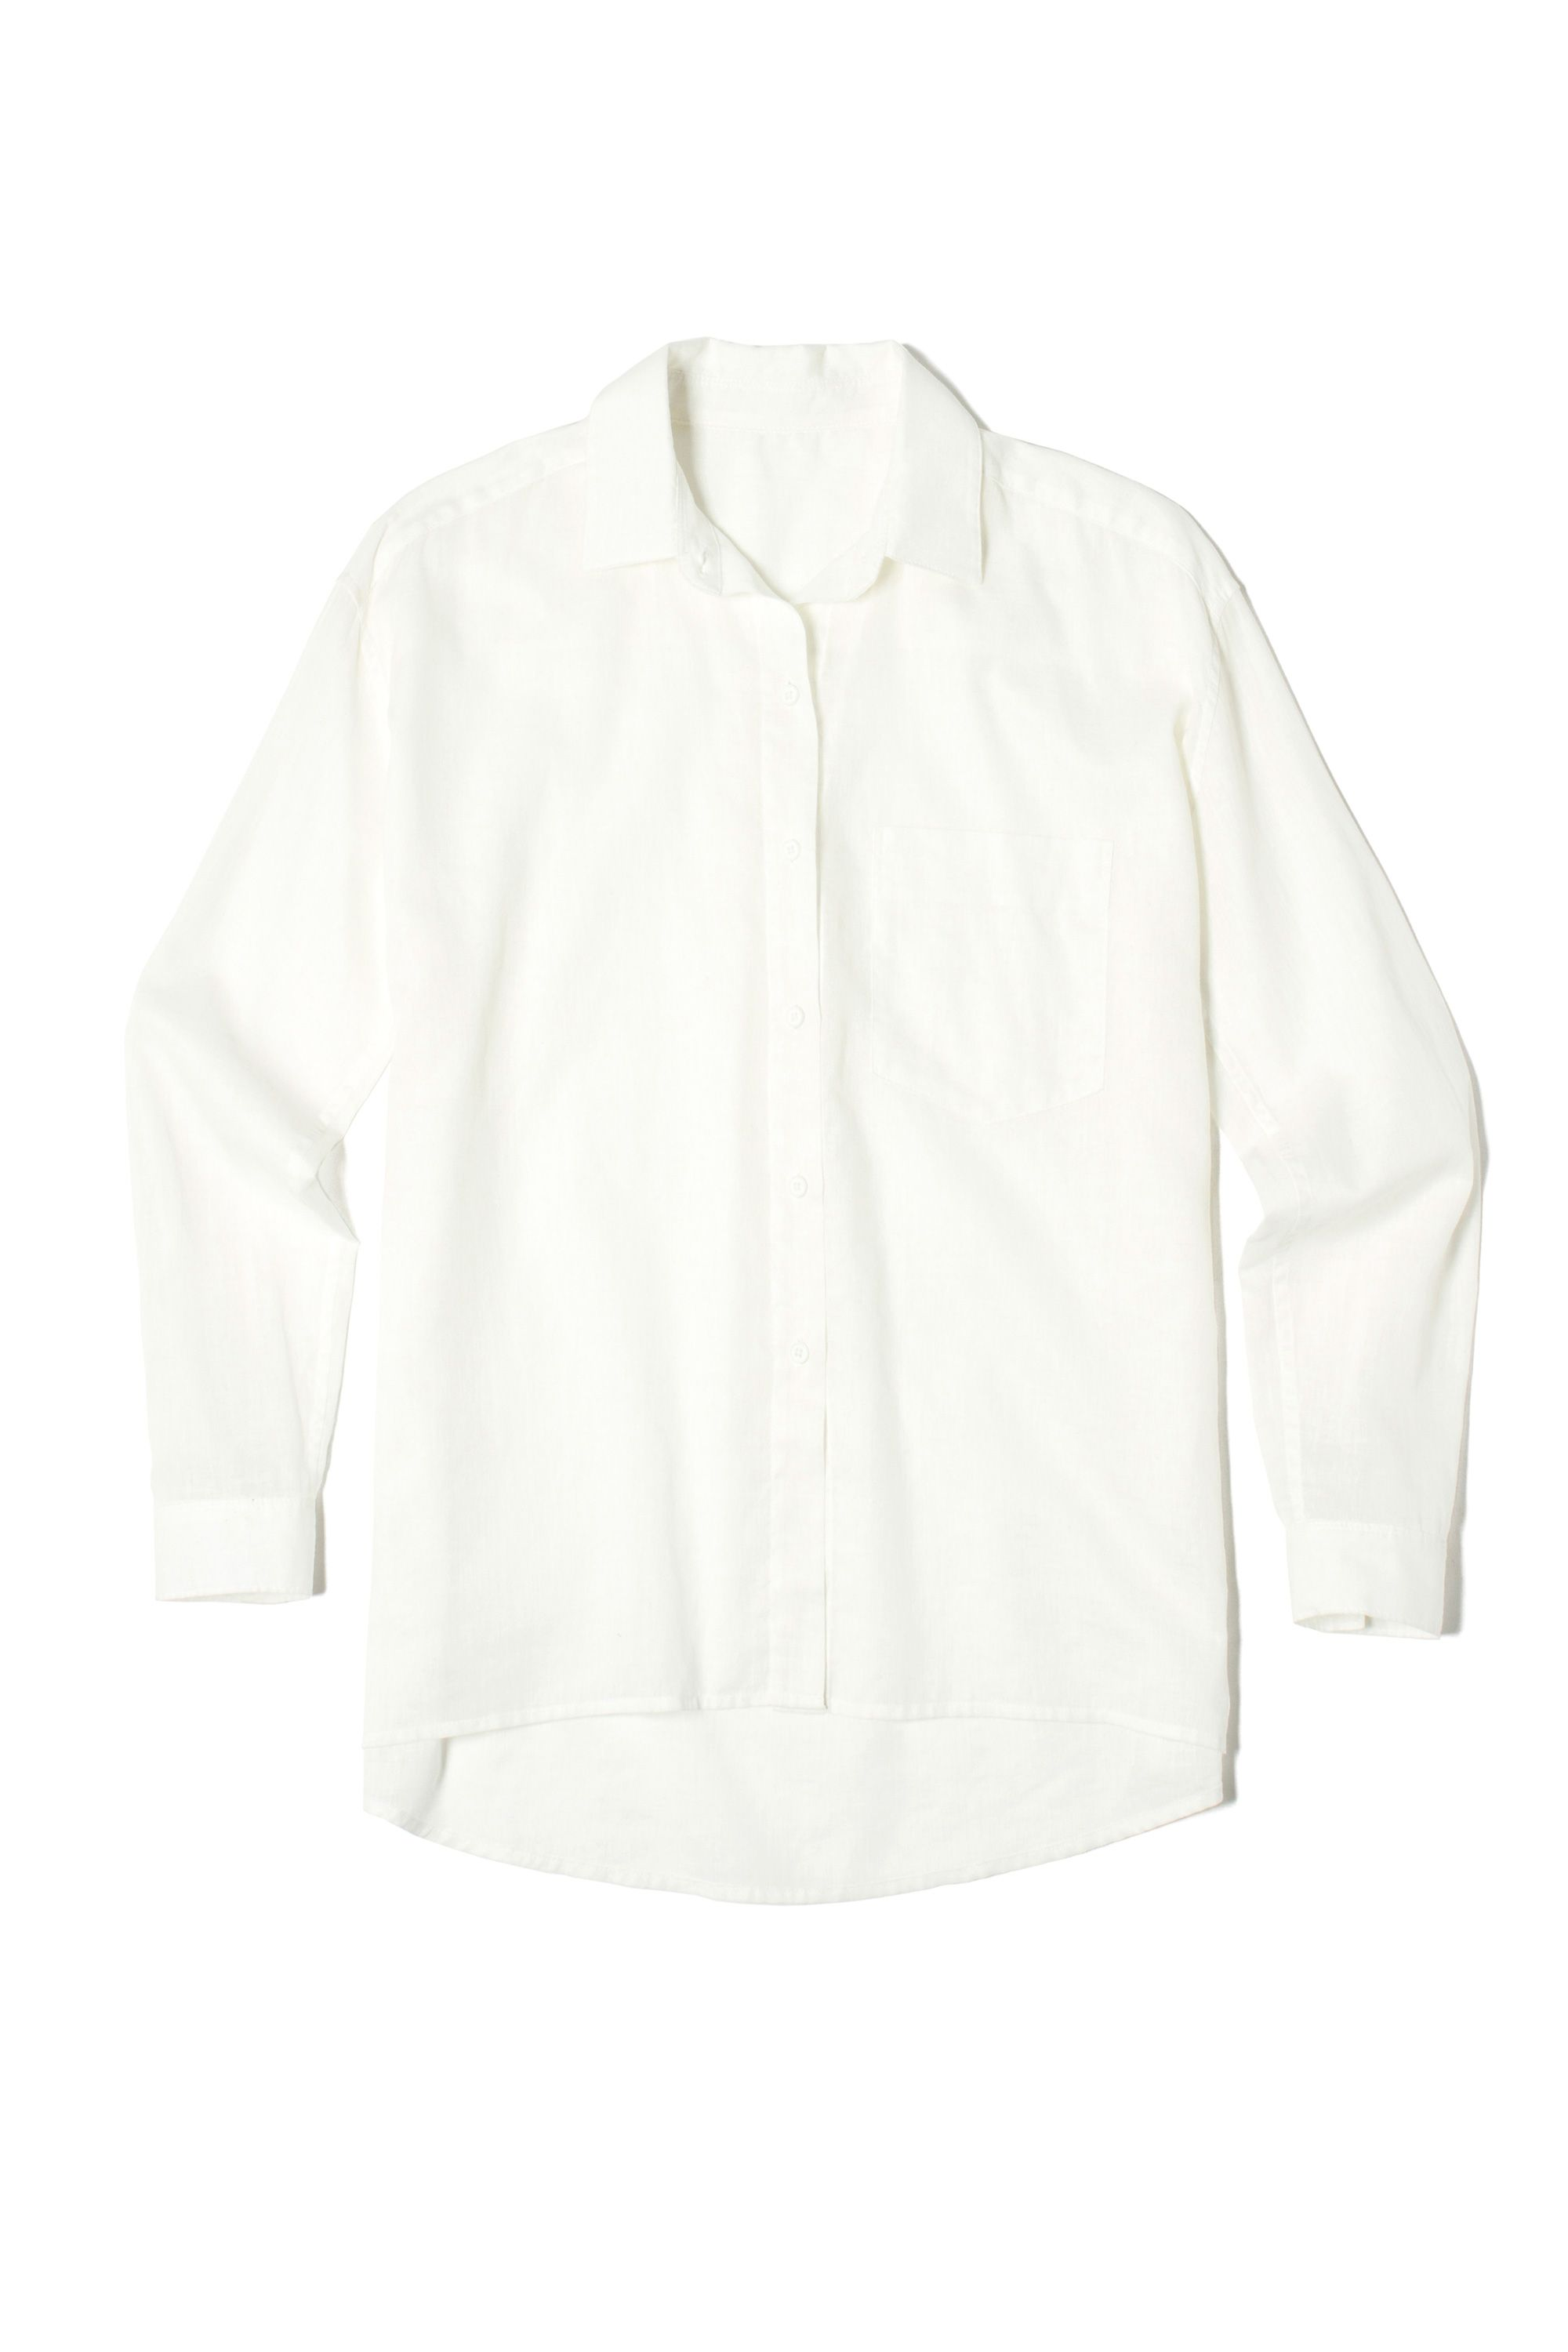 """<p>A breezy white button-downcan be styled in a ton of different ways: tuck, button, or knot it (or leave it open to fly freely in the breeze).</p><p><em data-redactor-tag=""""em"""" data-verified=""""redactor"""">Everlane The Relaxed Cotton Shirt, $65; </em><a href=""""https://www.everlane.com/products/womens-relaxed-poplin-shirt-white?collection=womens-tops"""" target=""""_blank"""" data-tracking-id=""""recirc-text-link""""><em data-redactor-tag=""""em"""" data-verified=""""redactor"""">everlane.com</em></a></p>"""